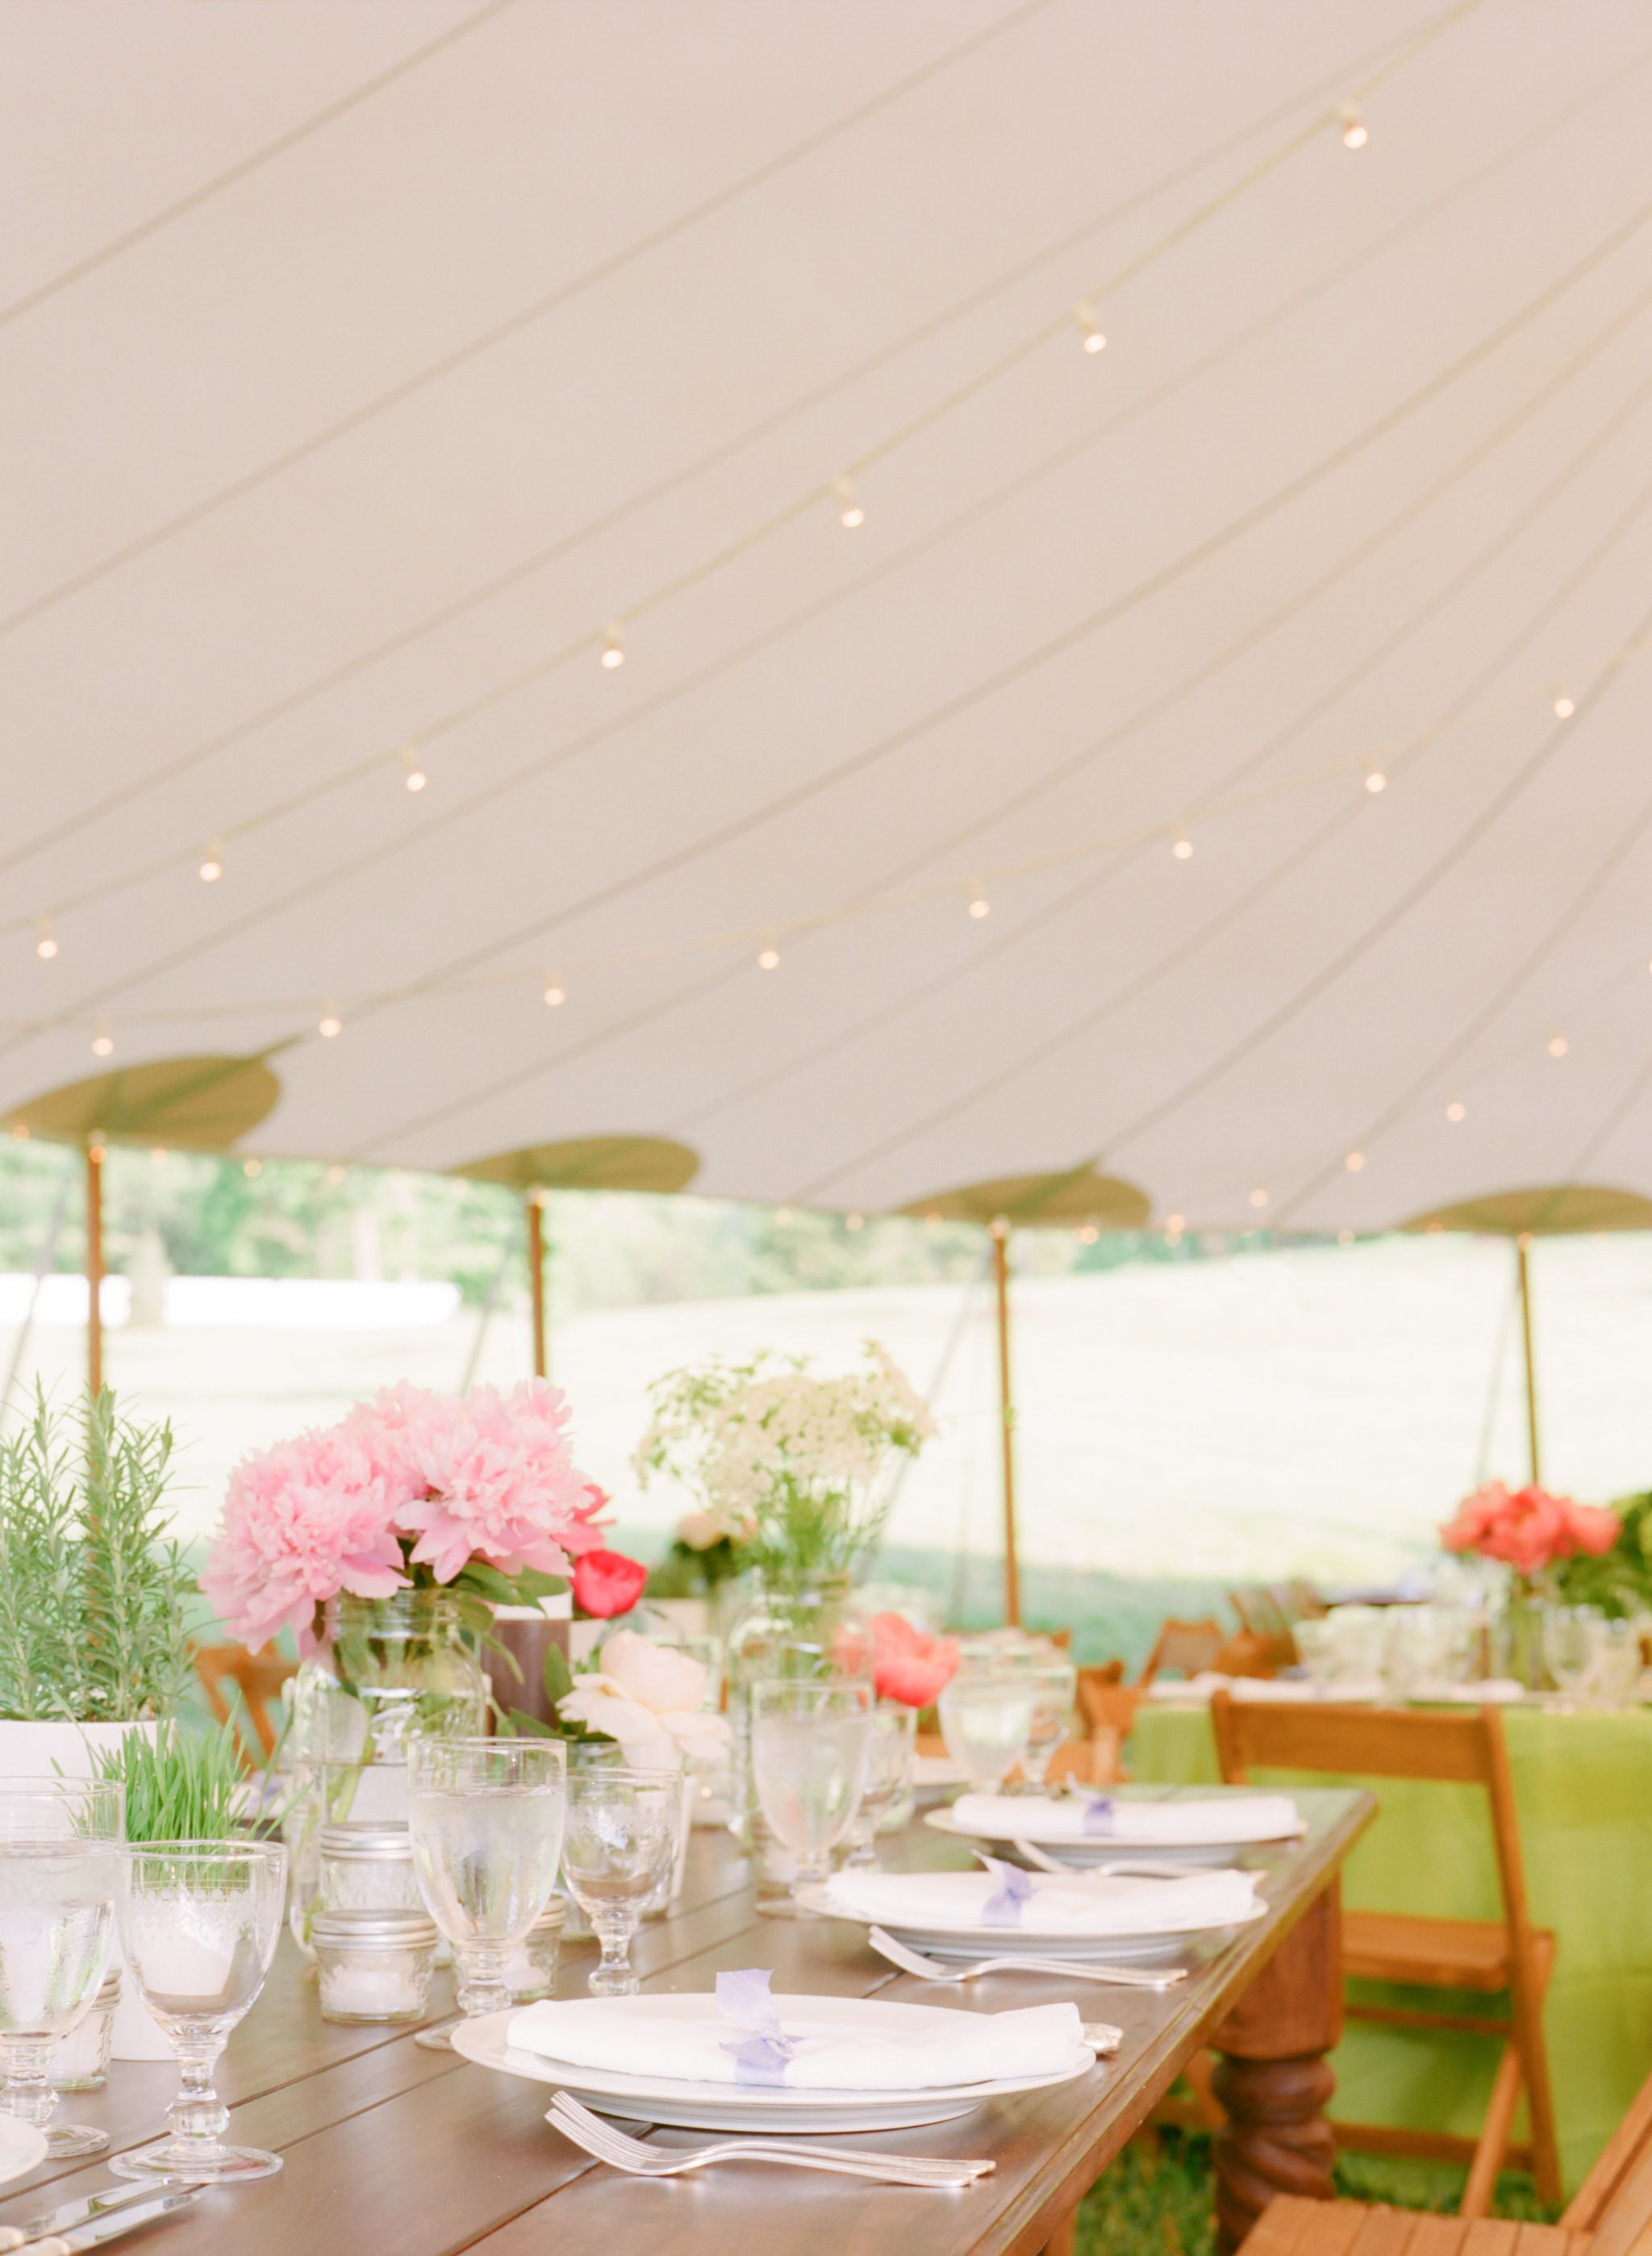 Wedding decorations green  Reception Tent With Pink and Green Decor  Tents Garden weddings